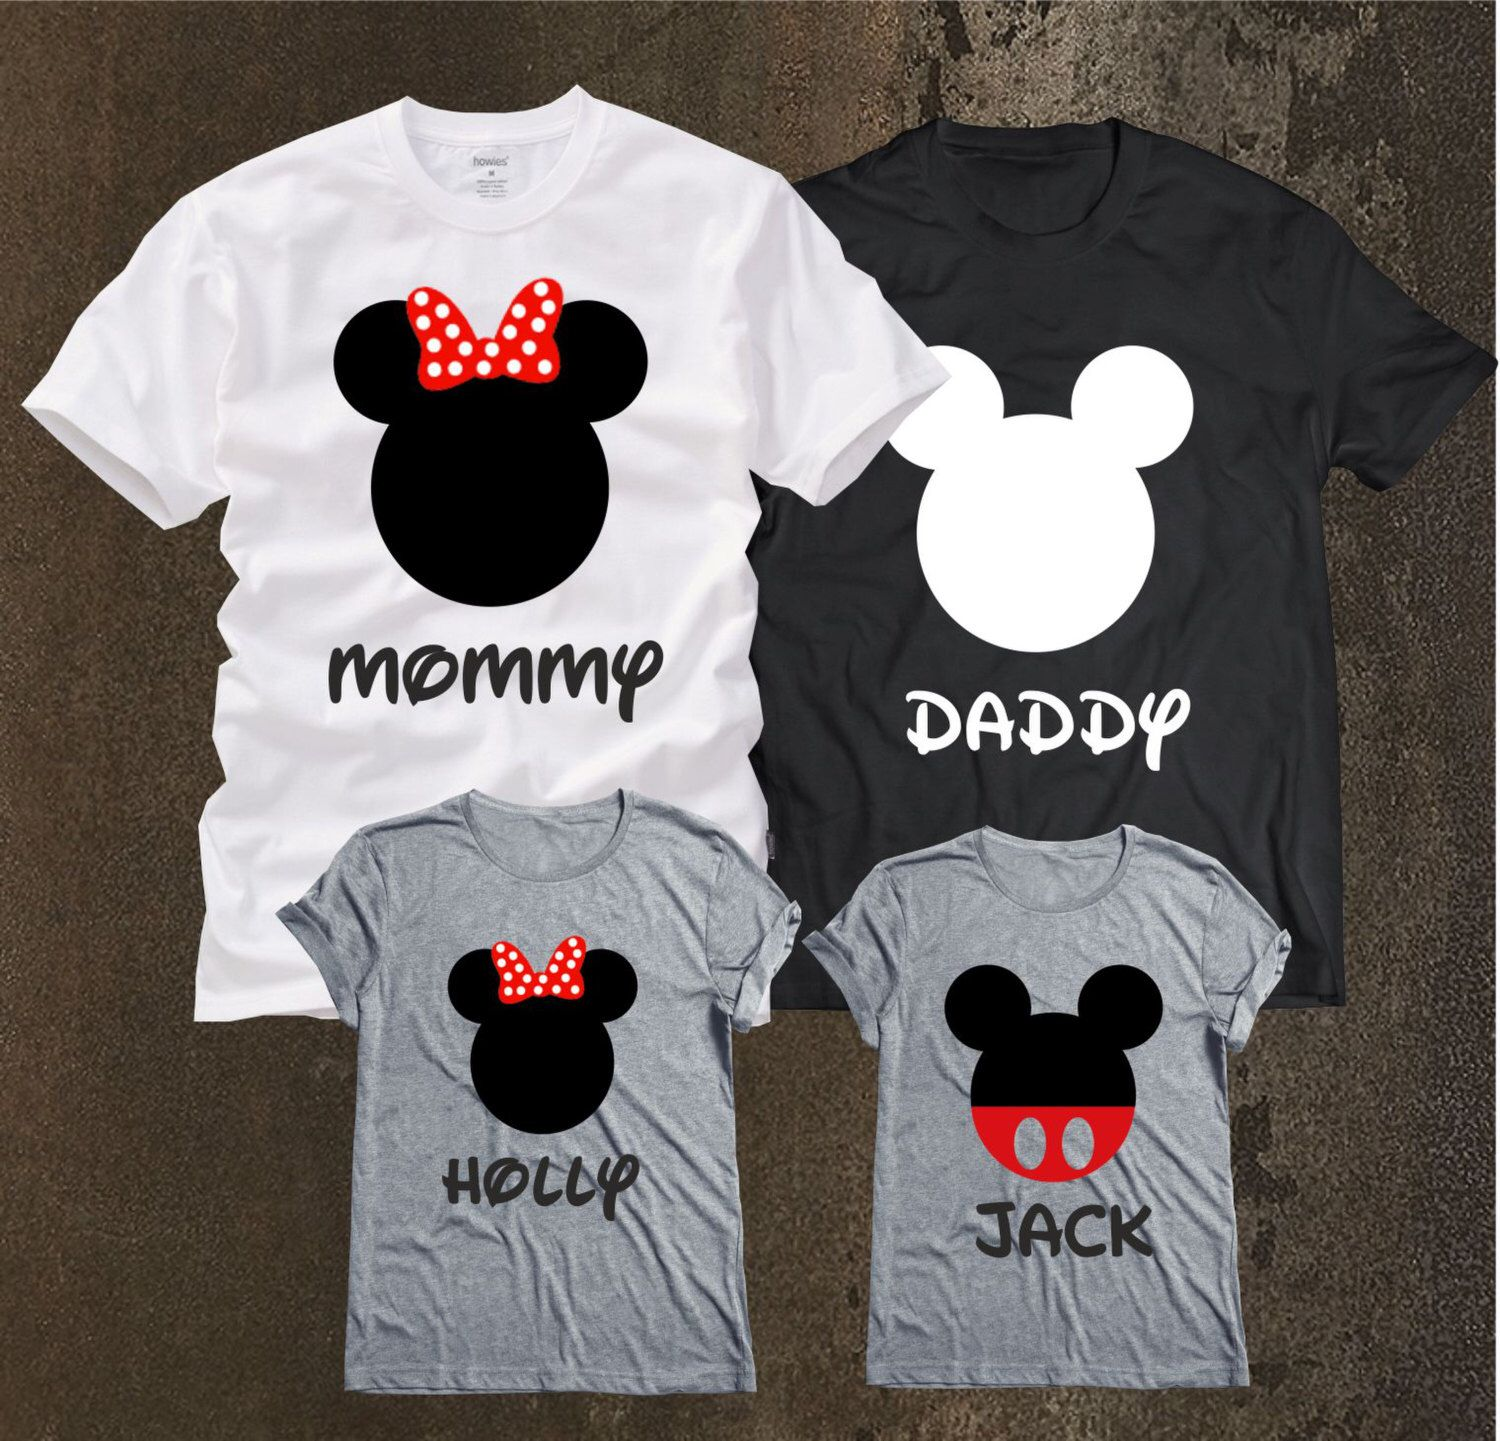 Pin By Ainsley Stone On Disney World Disney Shirts For Family